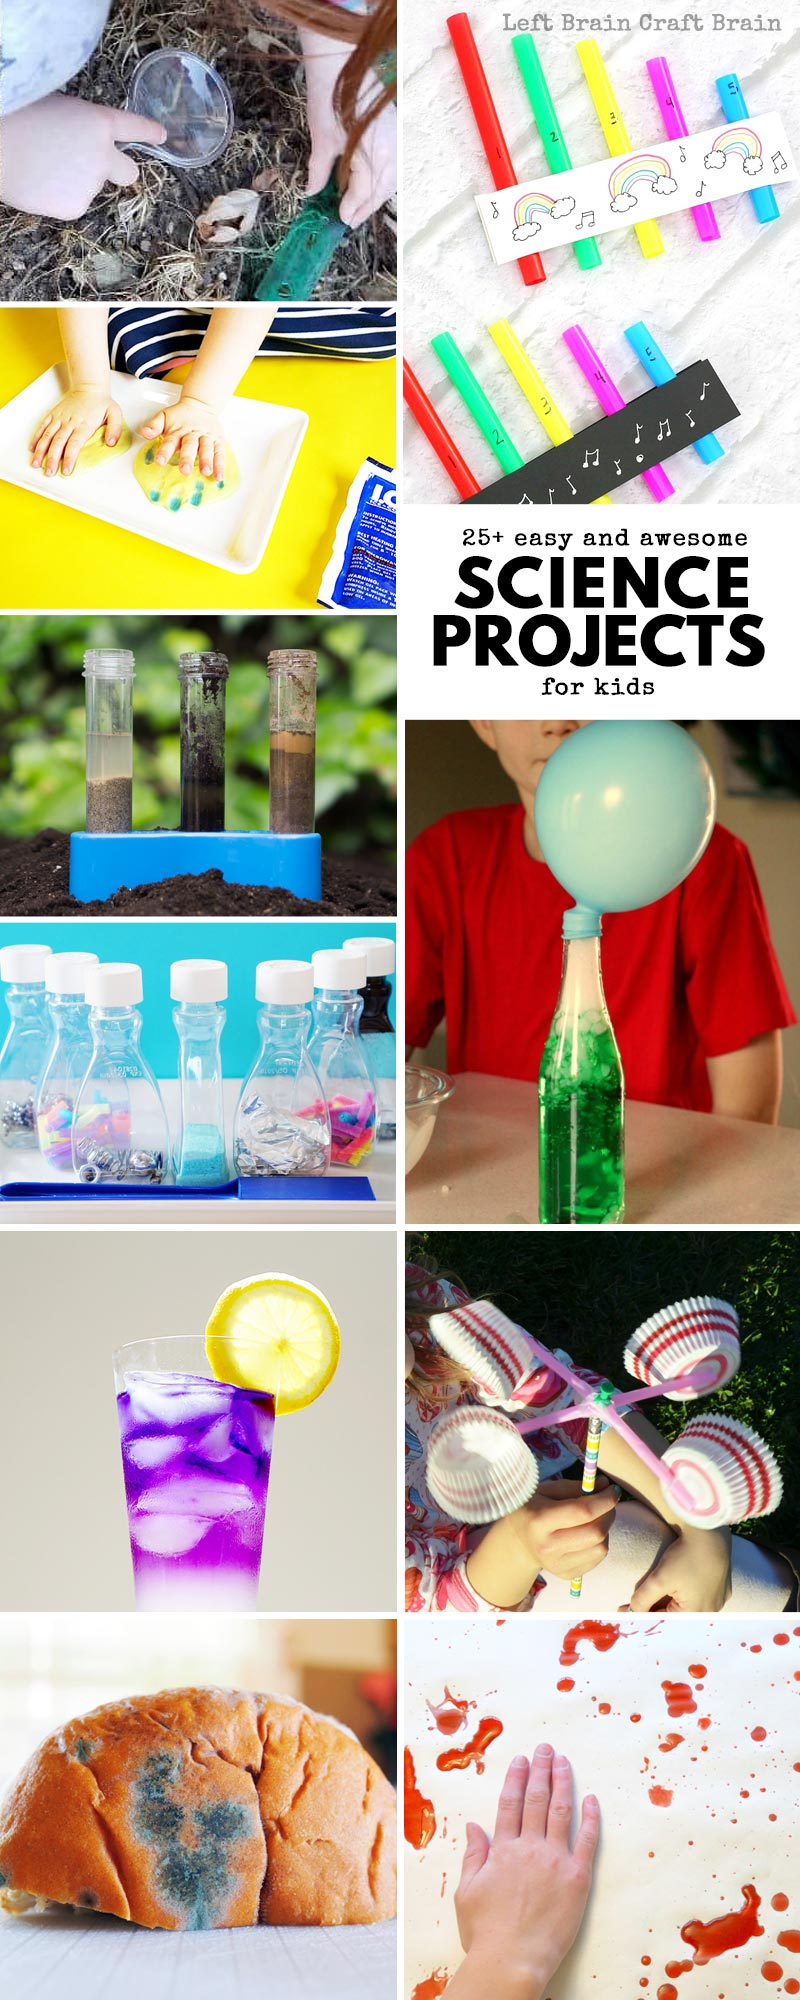 25 Easy And Awesome Science Projects For Kids Left Brain Craft Brain